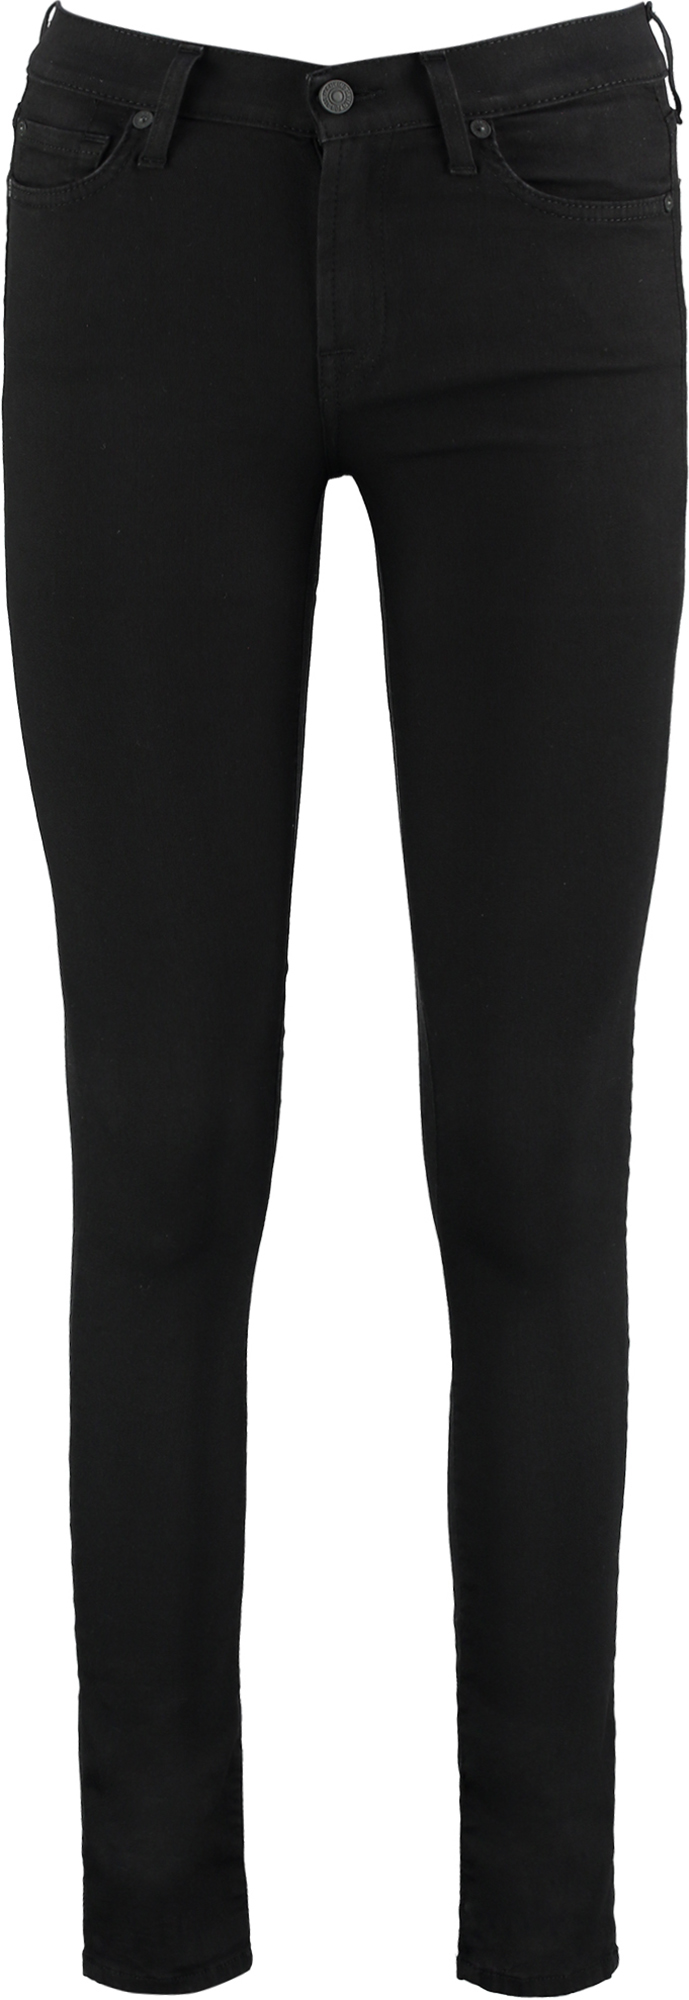 Piet Zoomers 7 for all mankind dames broek